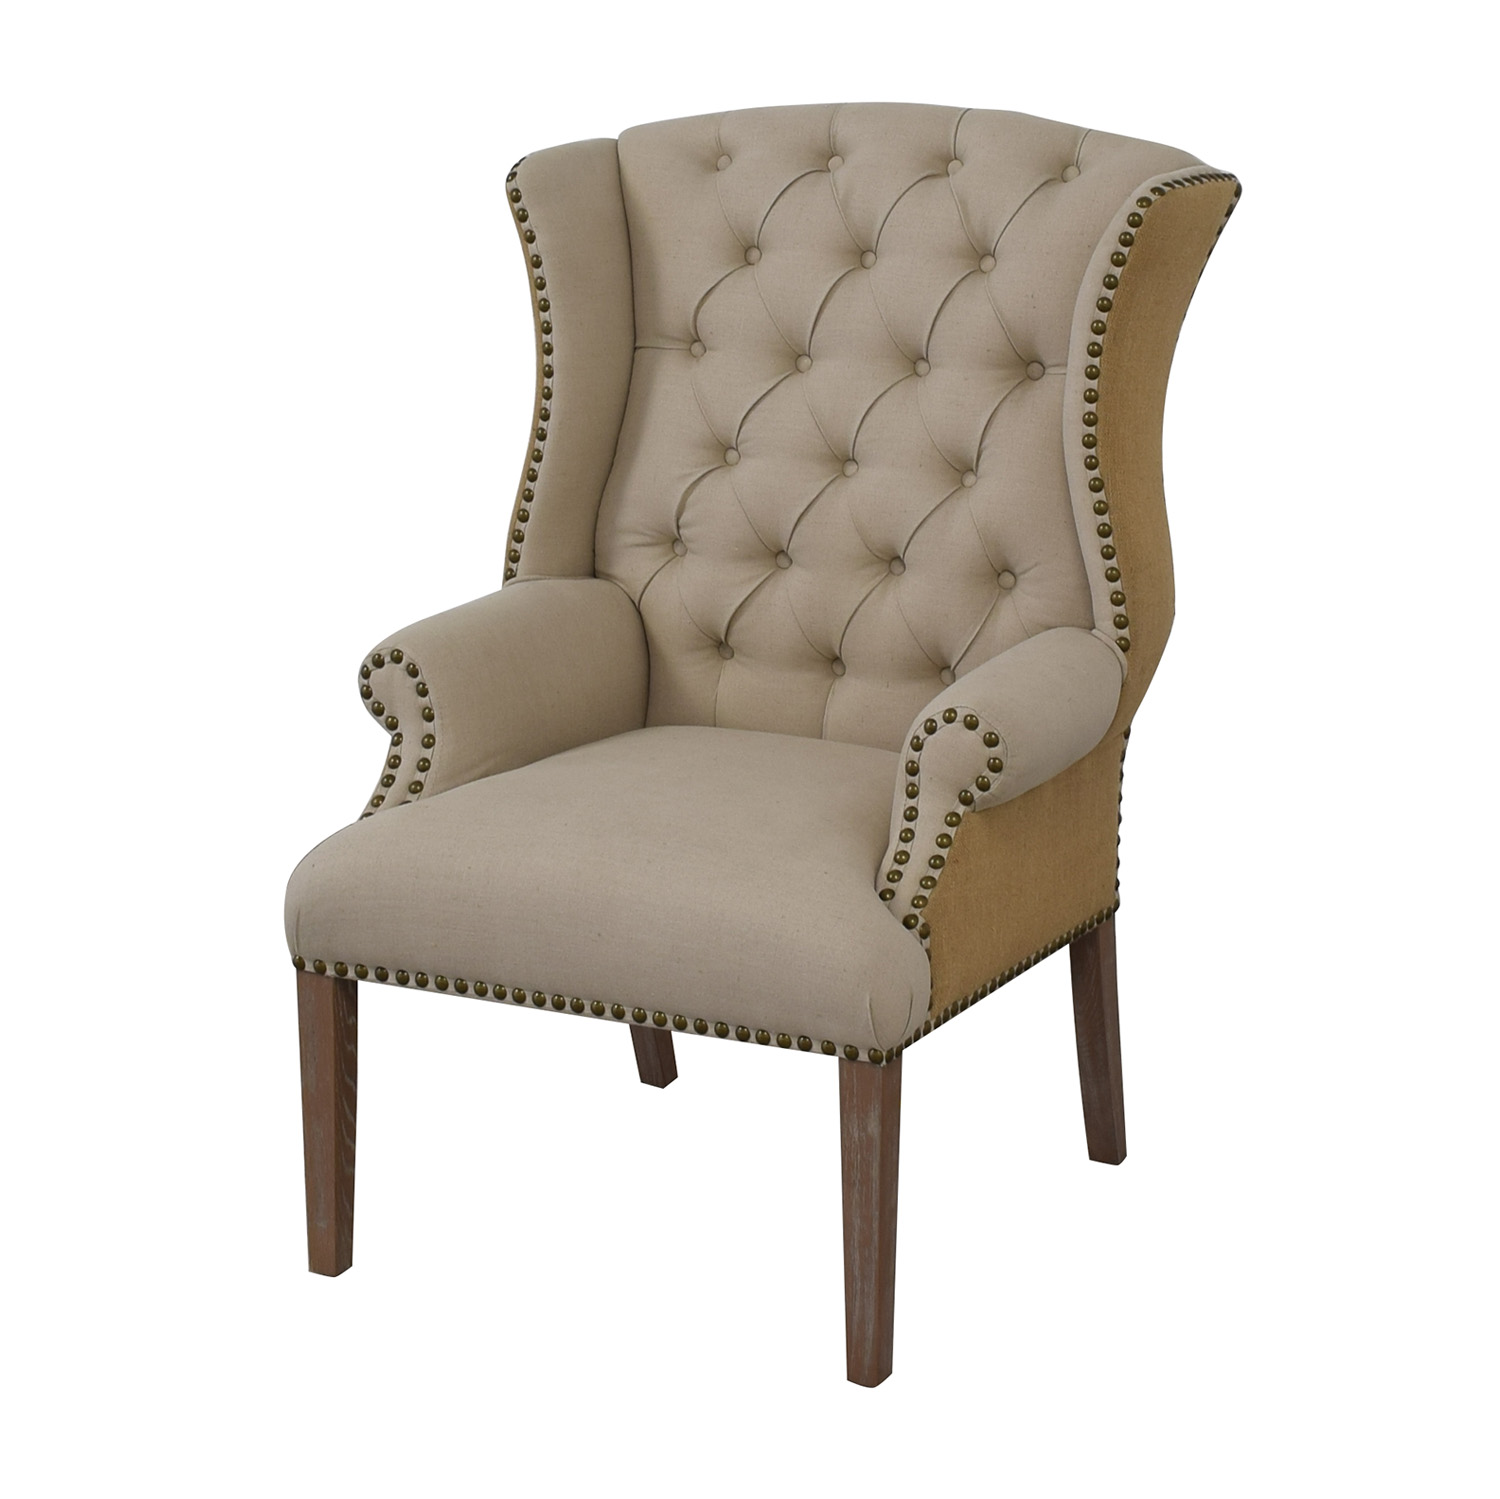 Hickory Chair Hickory Chair Traditional Lounge Chair for sale